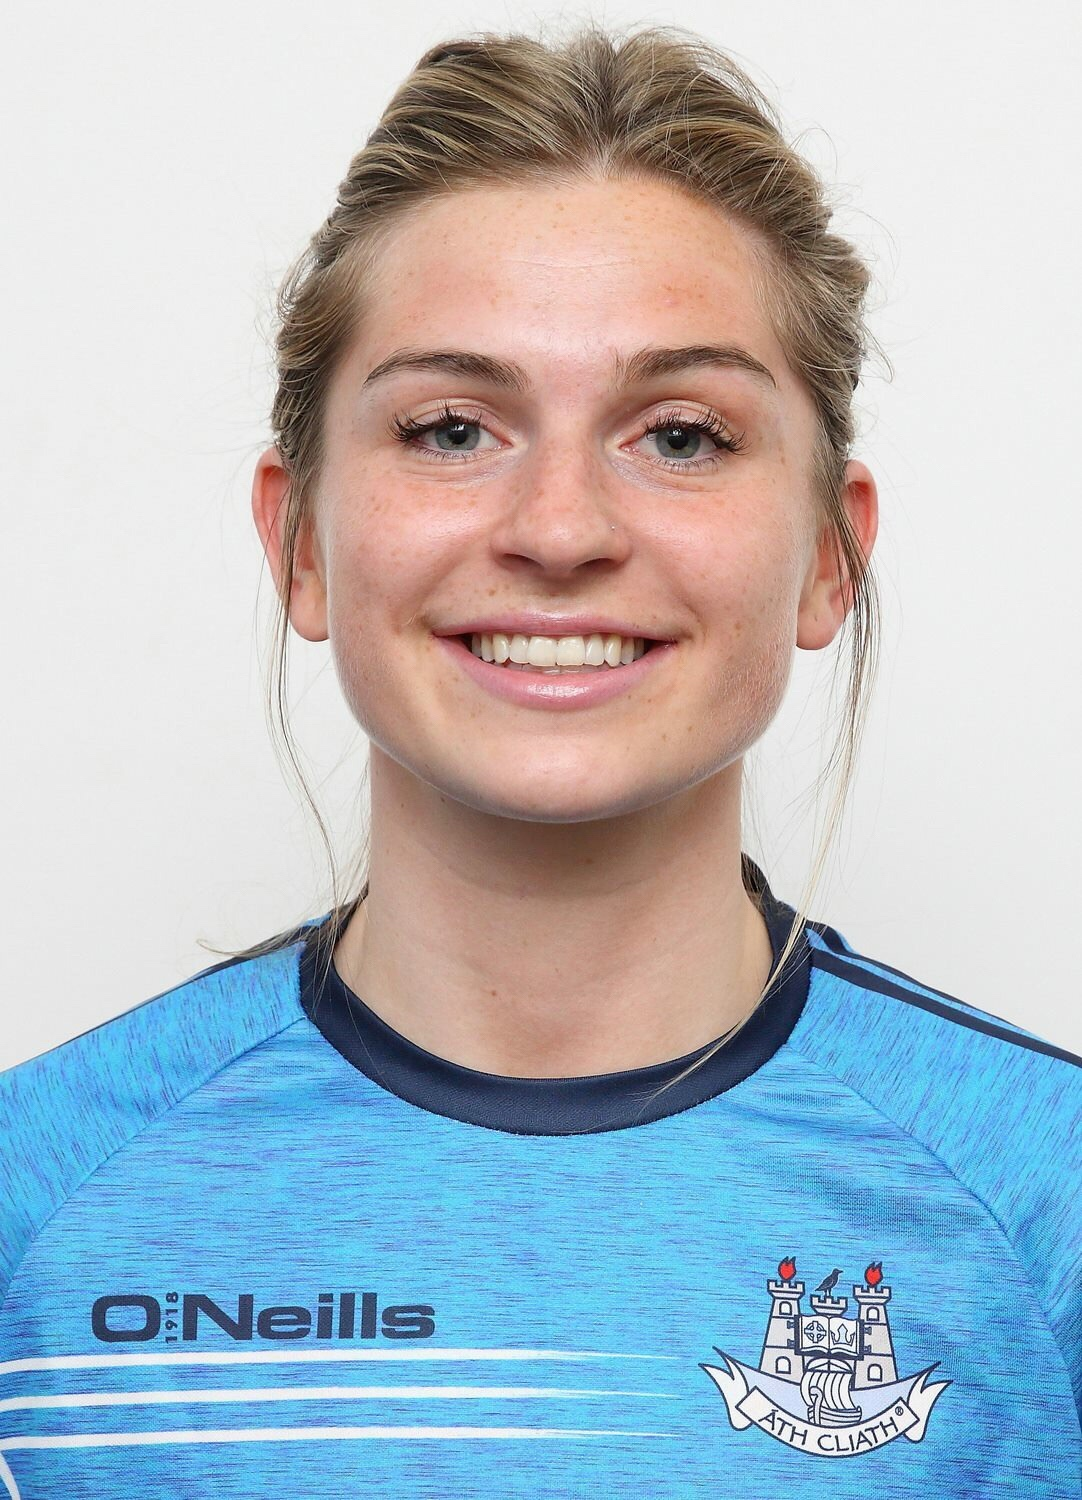 Headshot of Dublin defender Martha Byrne in a blue training top with the Dublin crest on the left hand side at the announcement Martha was named on the Lidl team of the league